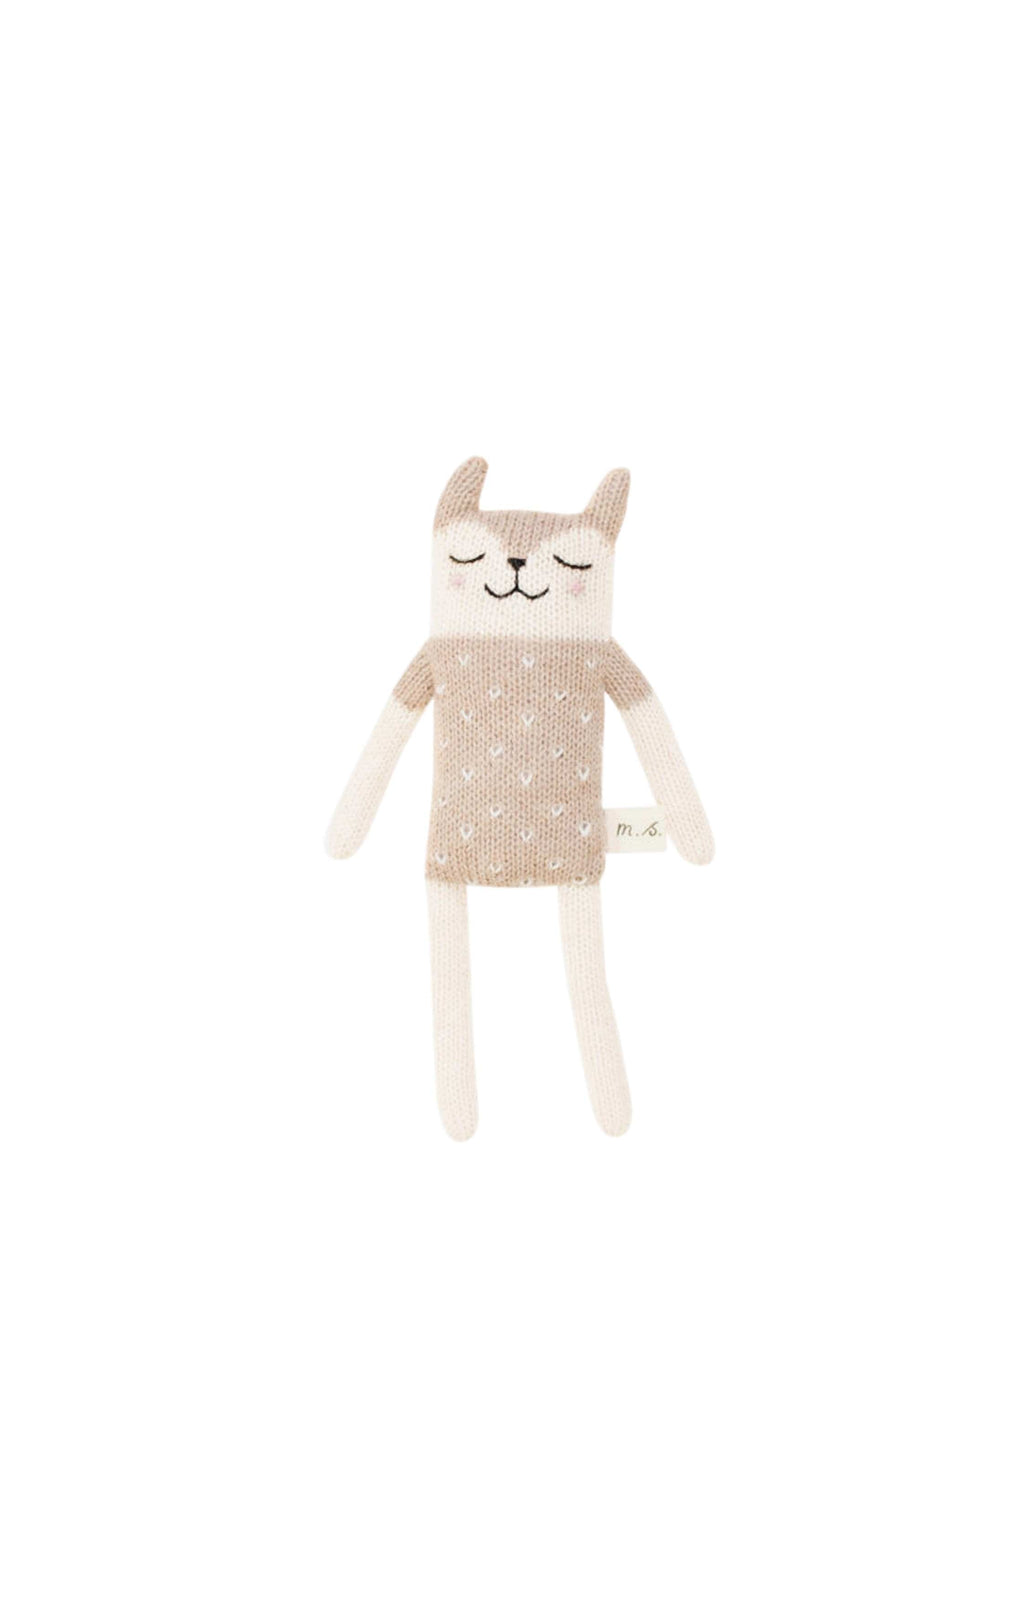 Main Sauvage fawn knit toy Sand (PRE-ORDER AUG)